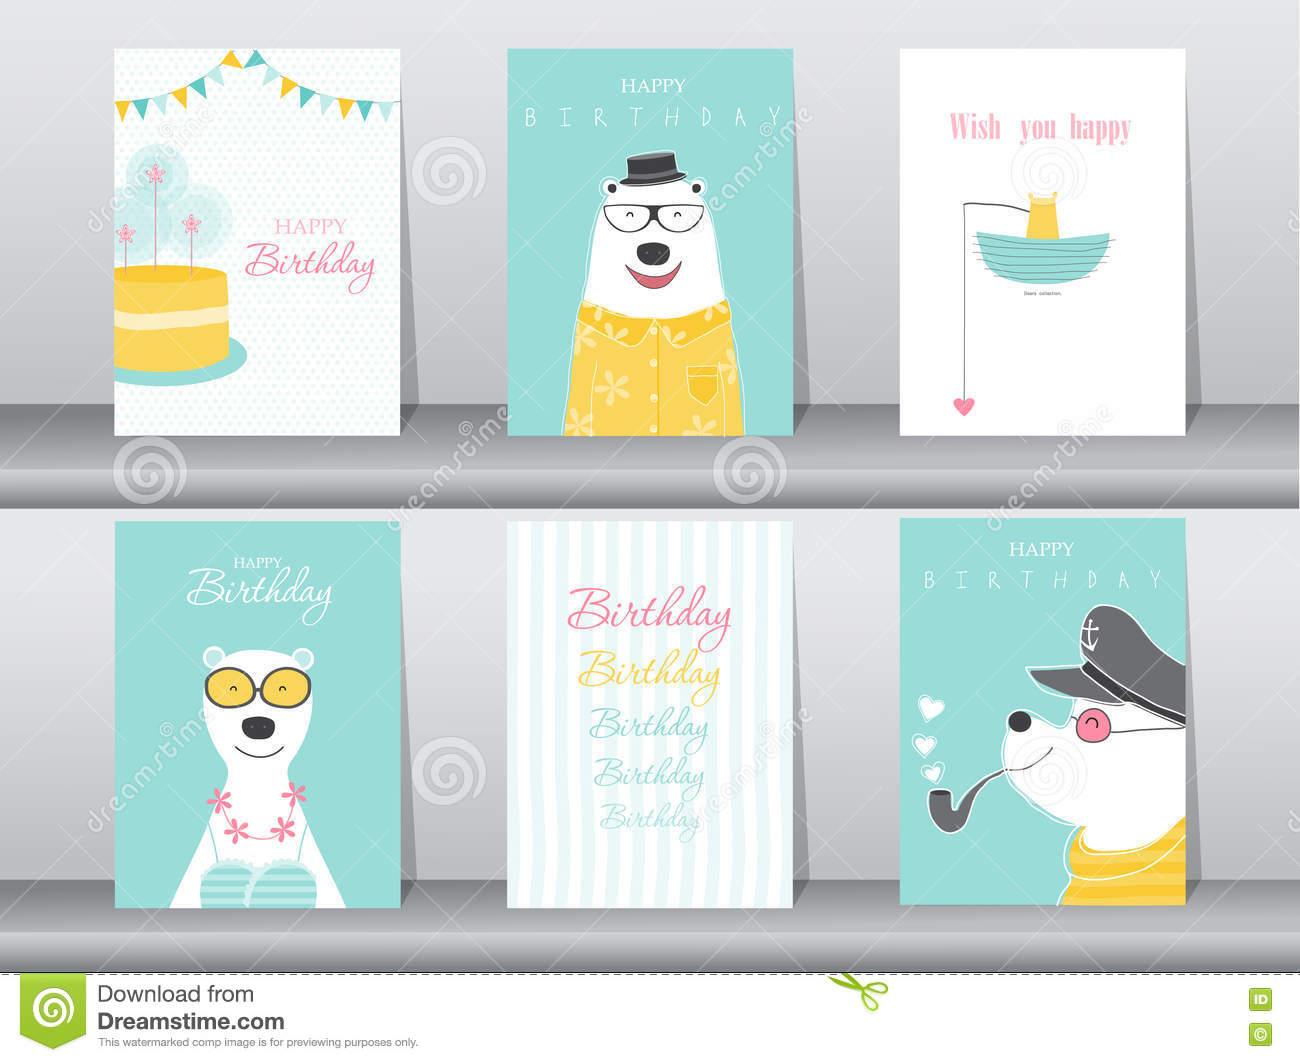 Set of birthday cardsposterinvitation cardstemplategreeting download set of birthday cardsposterinvitation cardstemplategreeting cards m4hsunfo